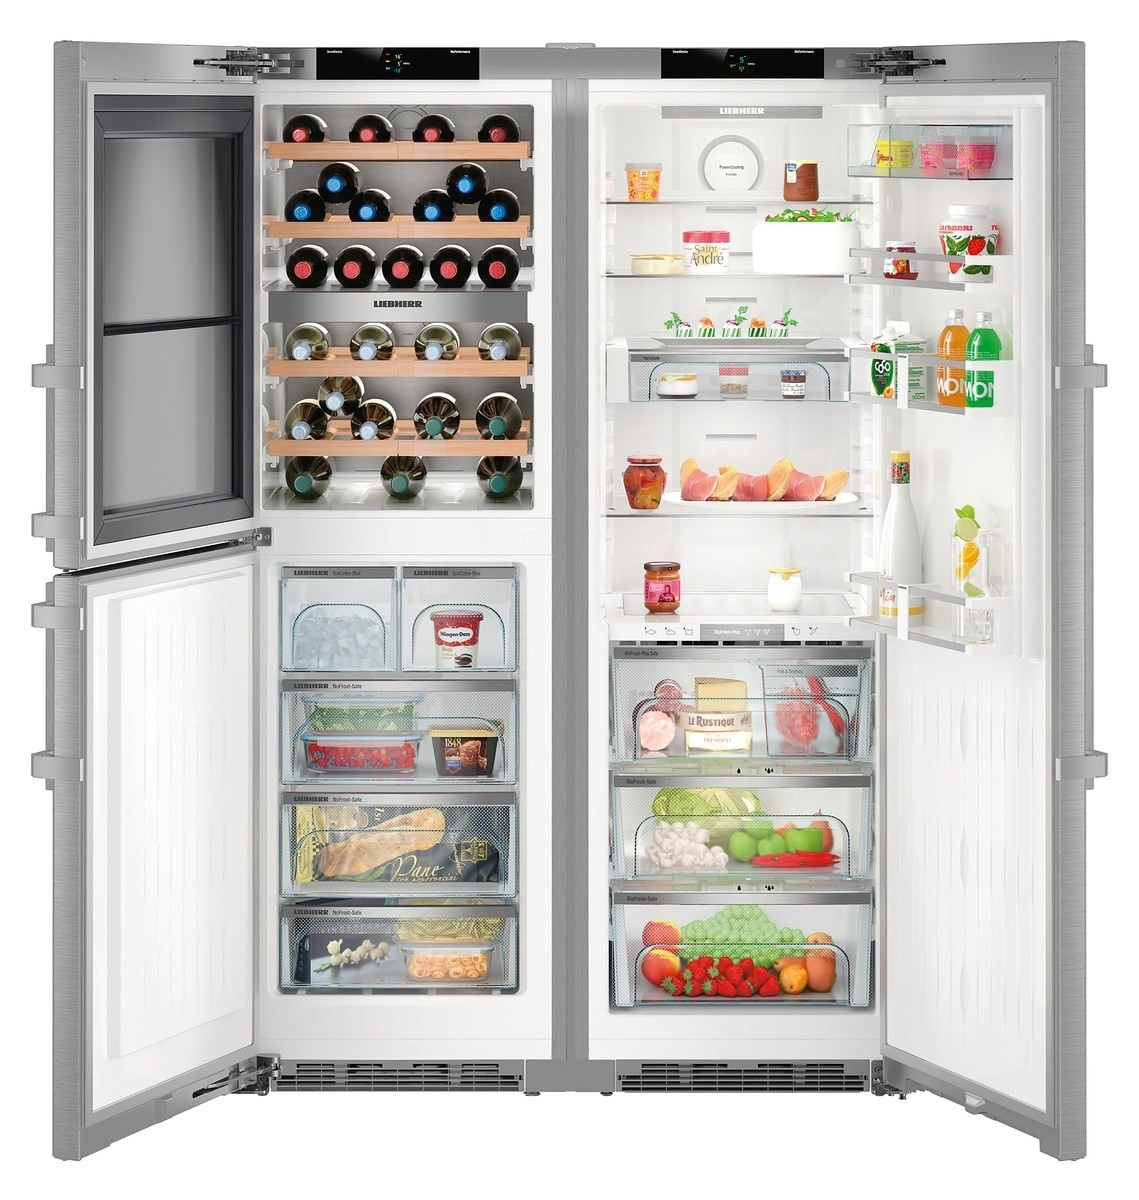 Liebherr SBSES8486 Fridge Freezer